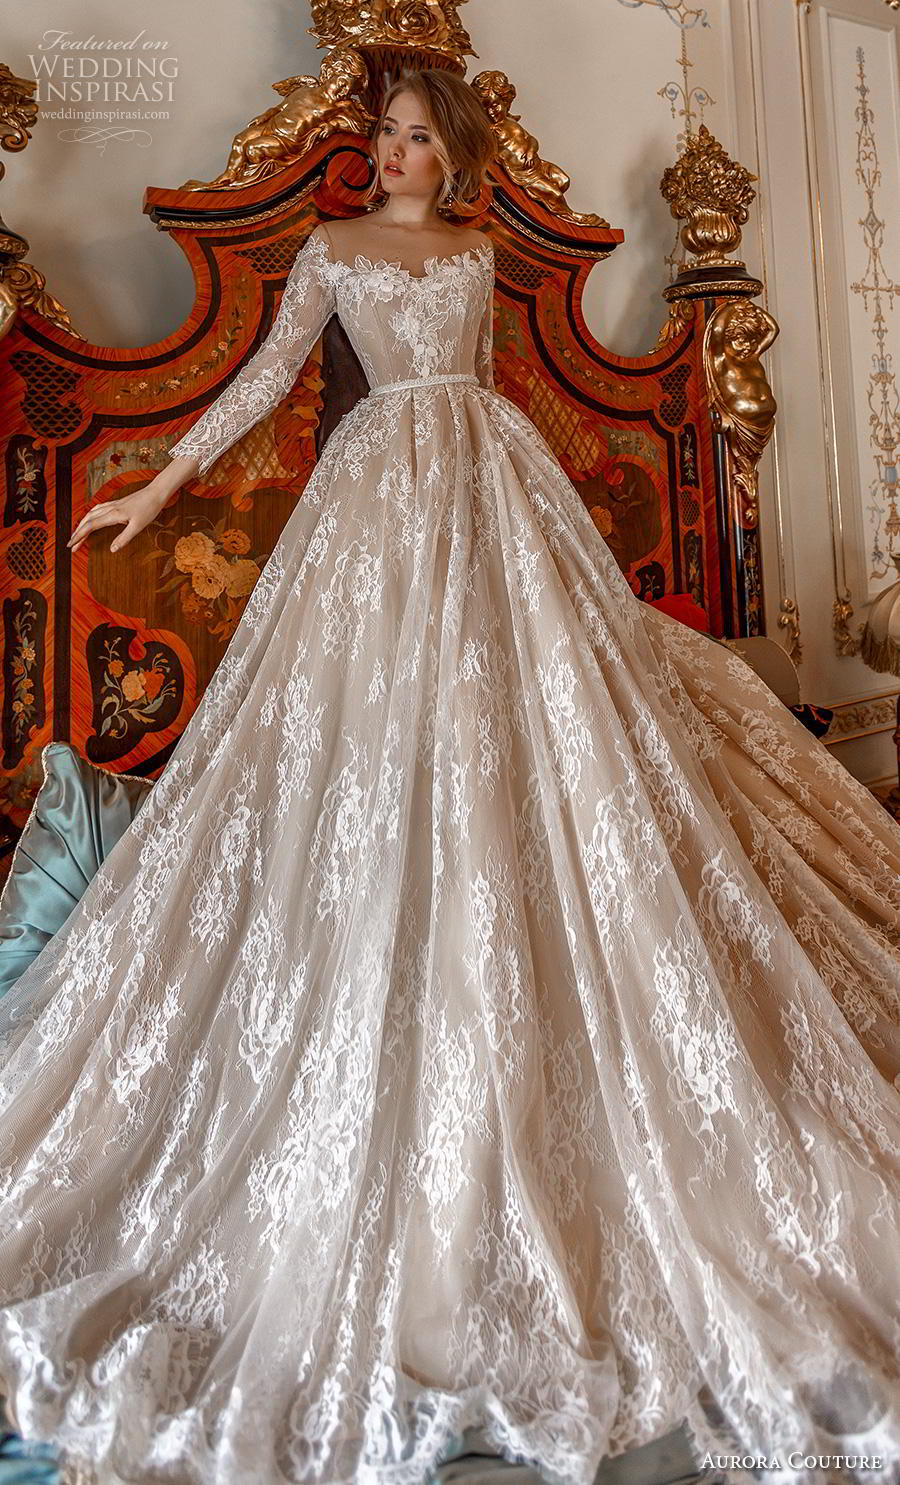 aurora couture 2019 bridal long sleeves illusion off the shoulder neckline full embellishment romantic princess ball gown a  line wedding dress mid back royal train (1) mv